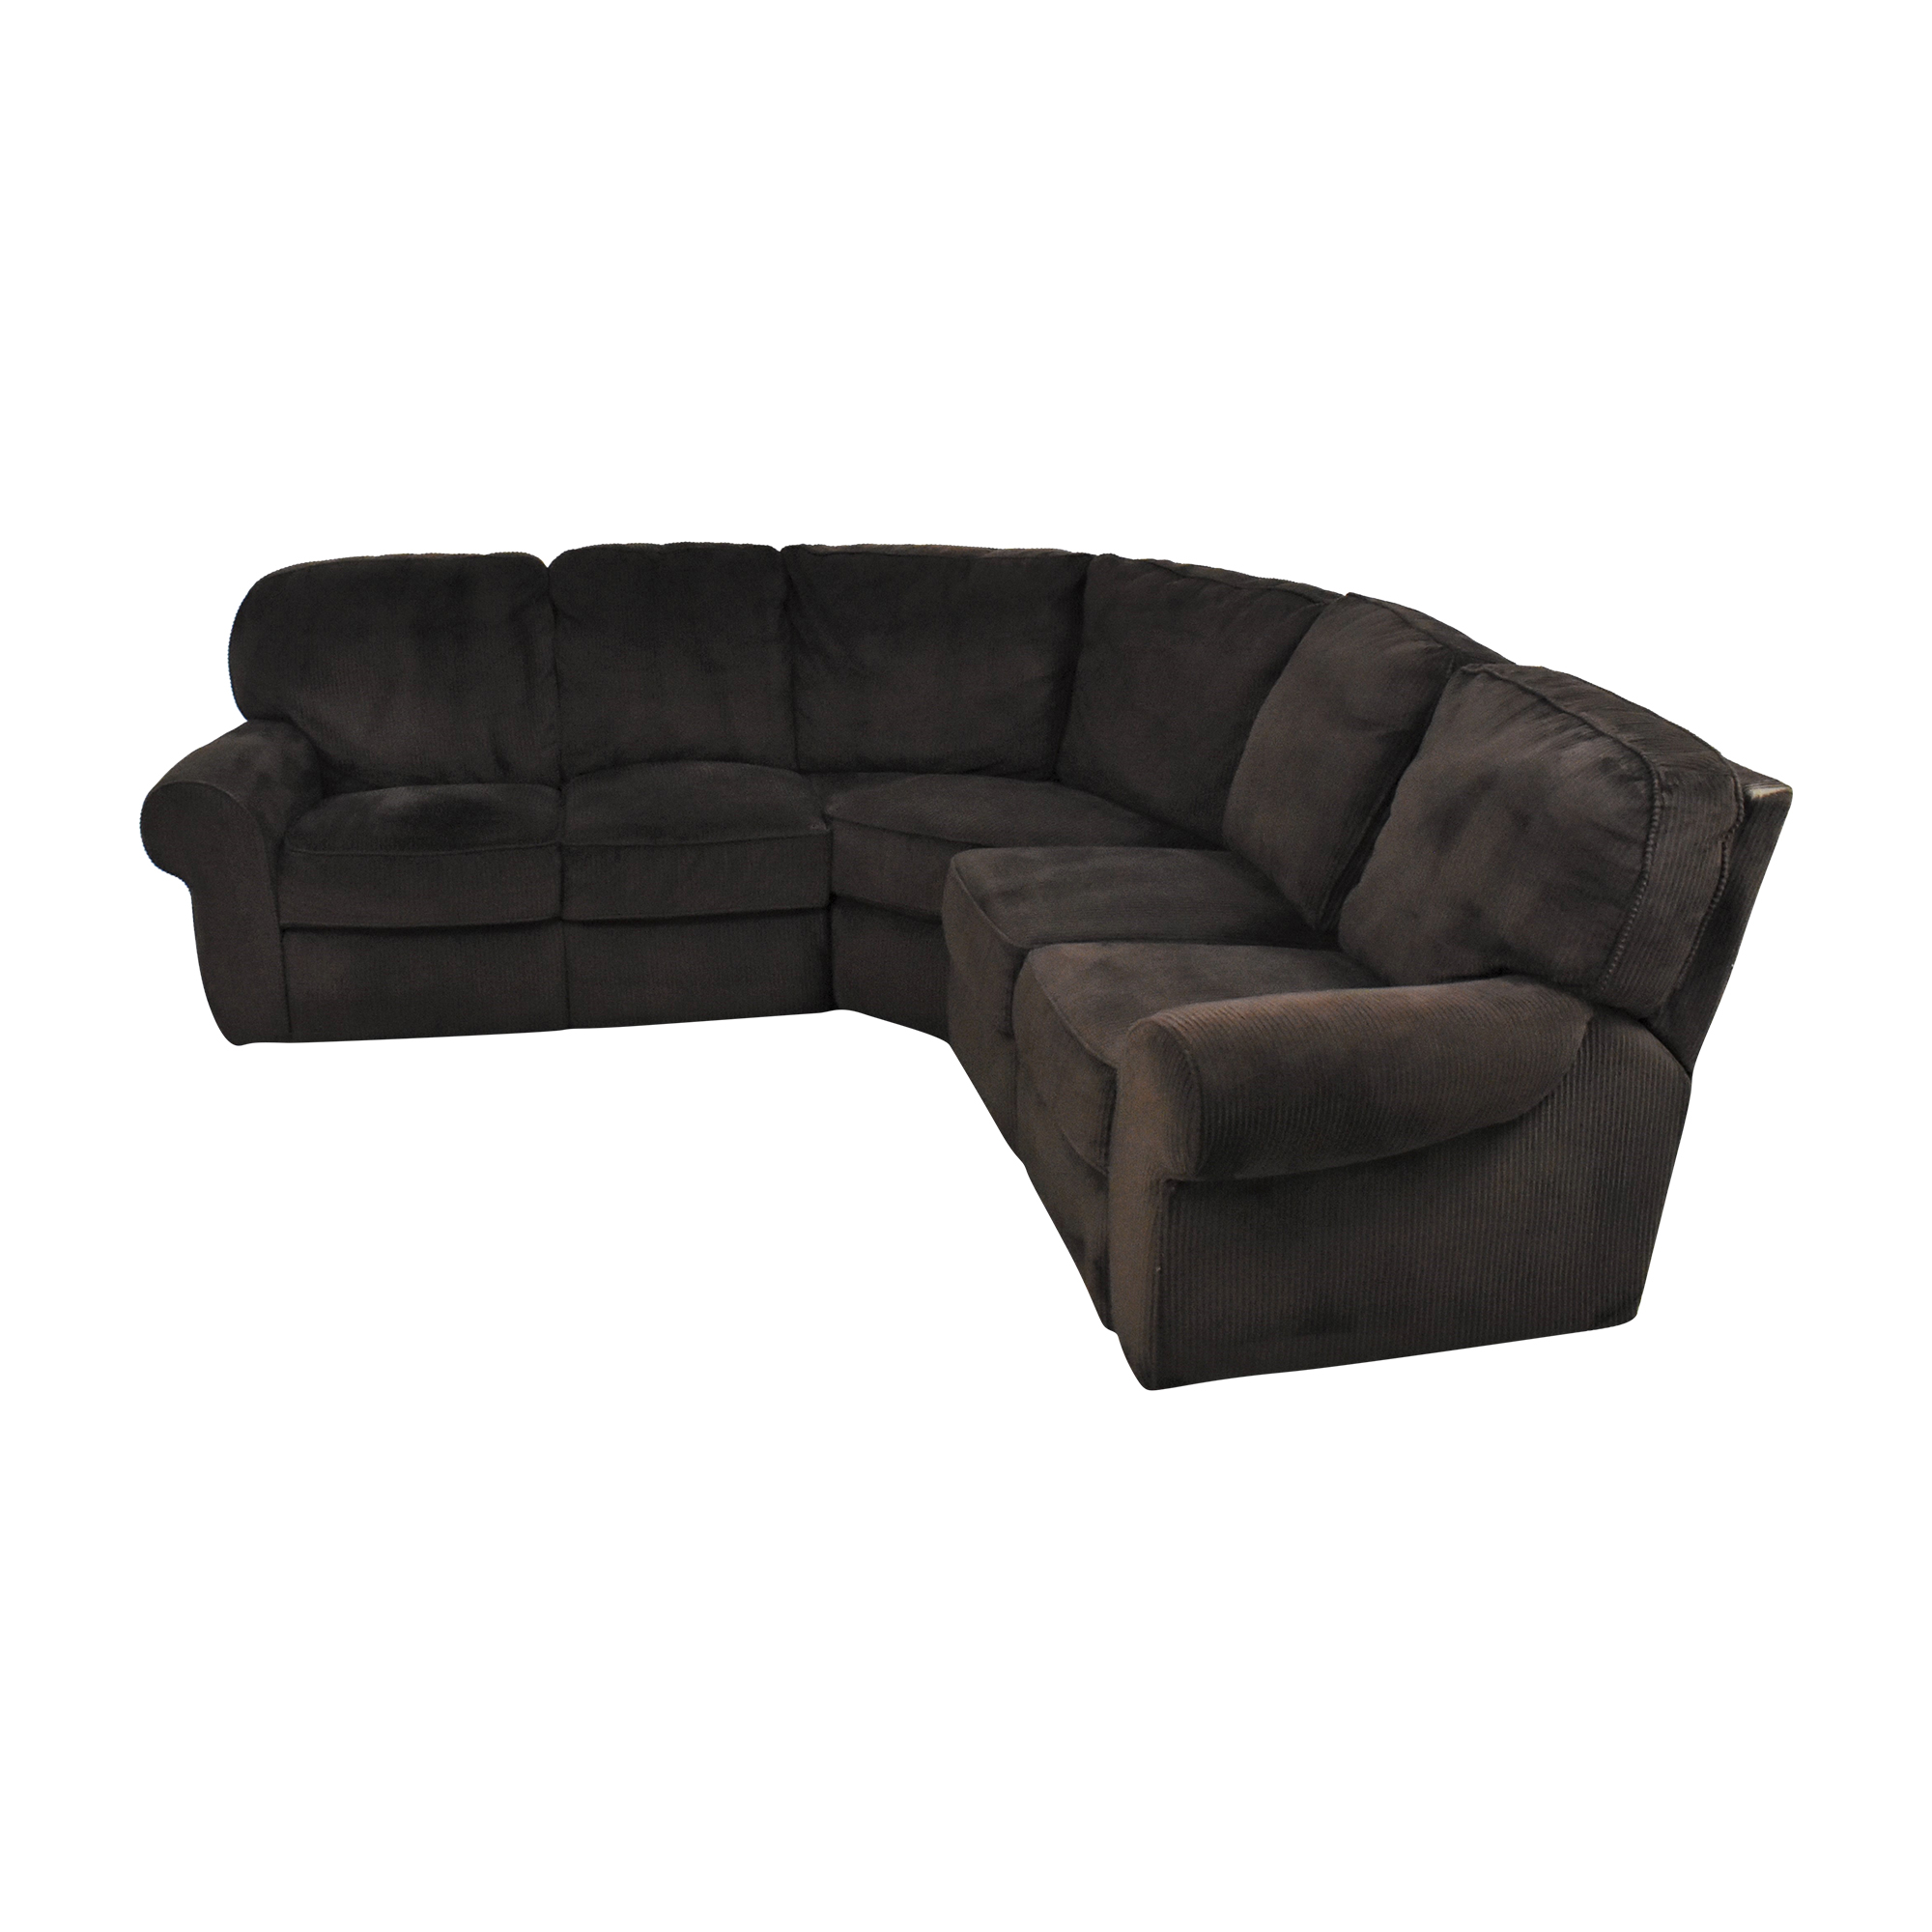 Lane Furniture Lane Furniture Megan Three Piece Reclining Sectional on sale